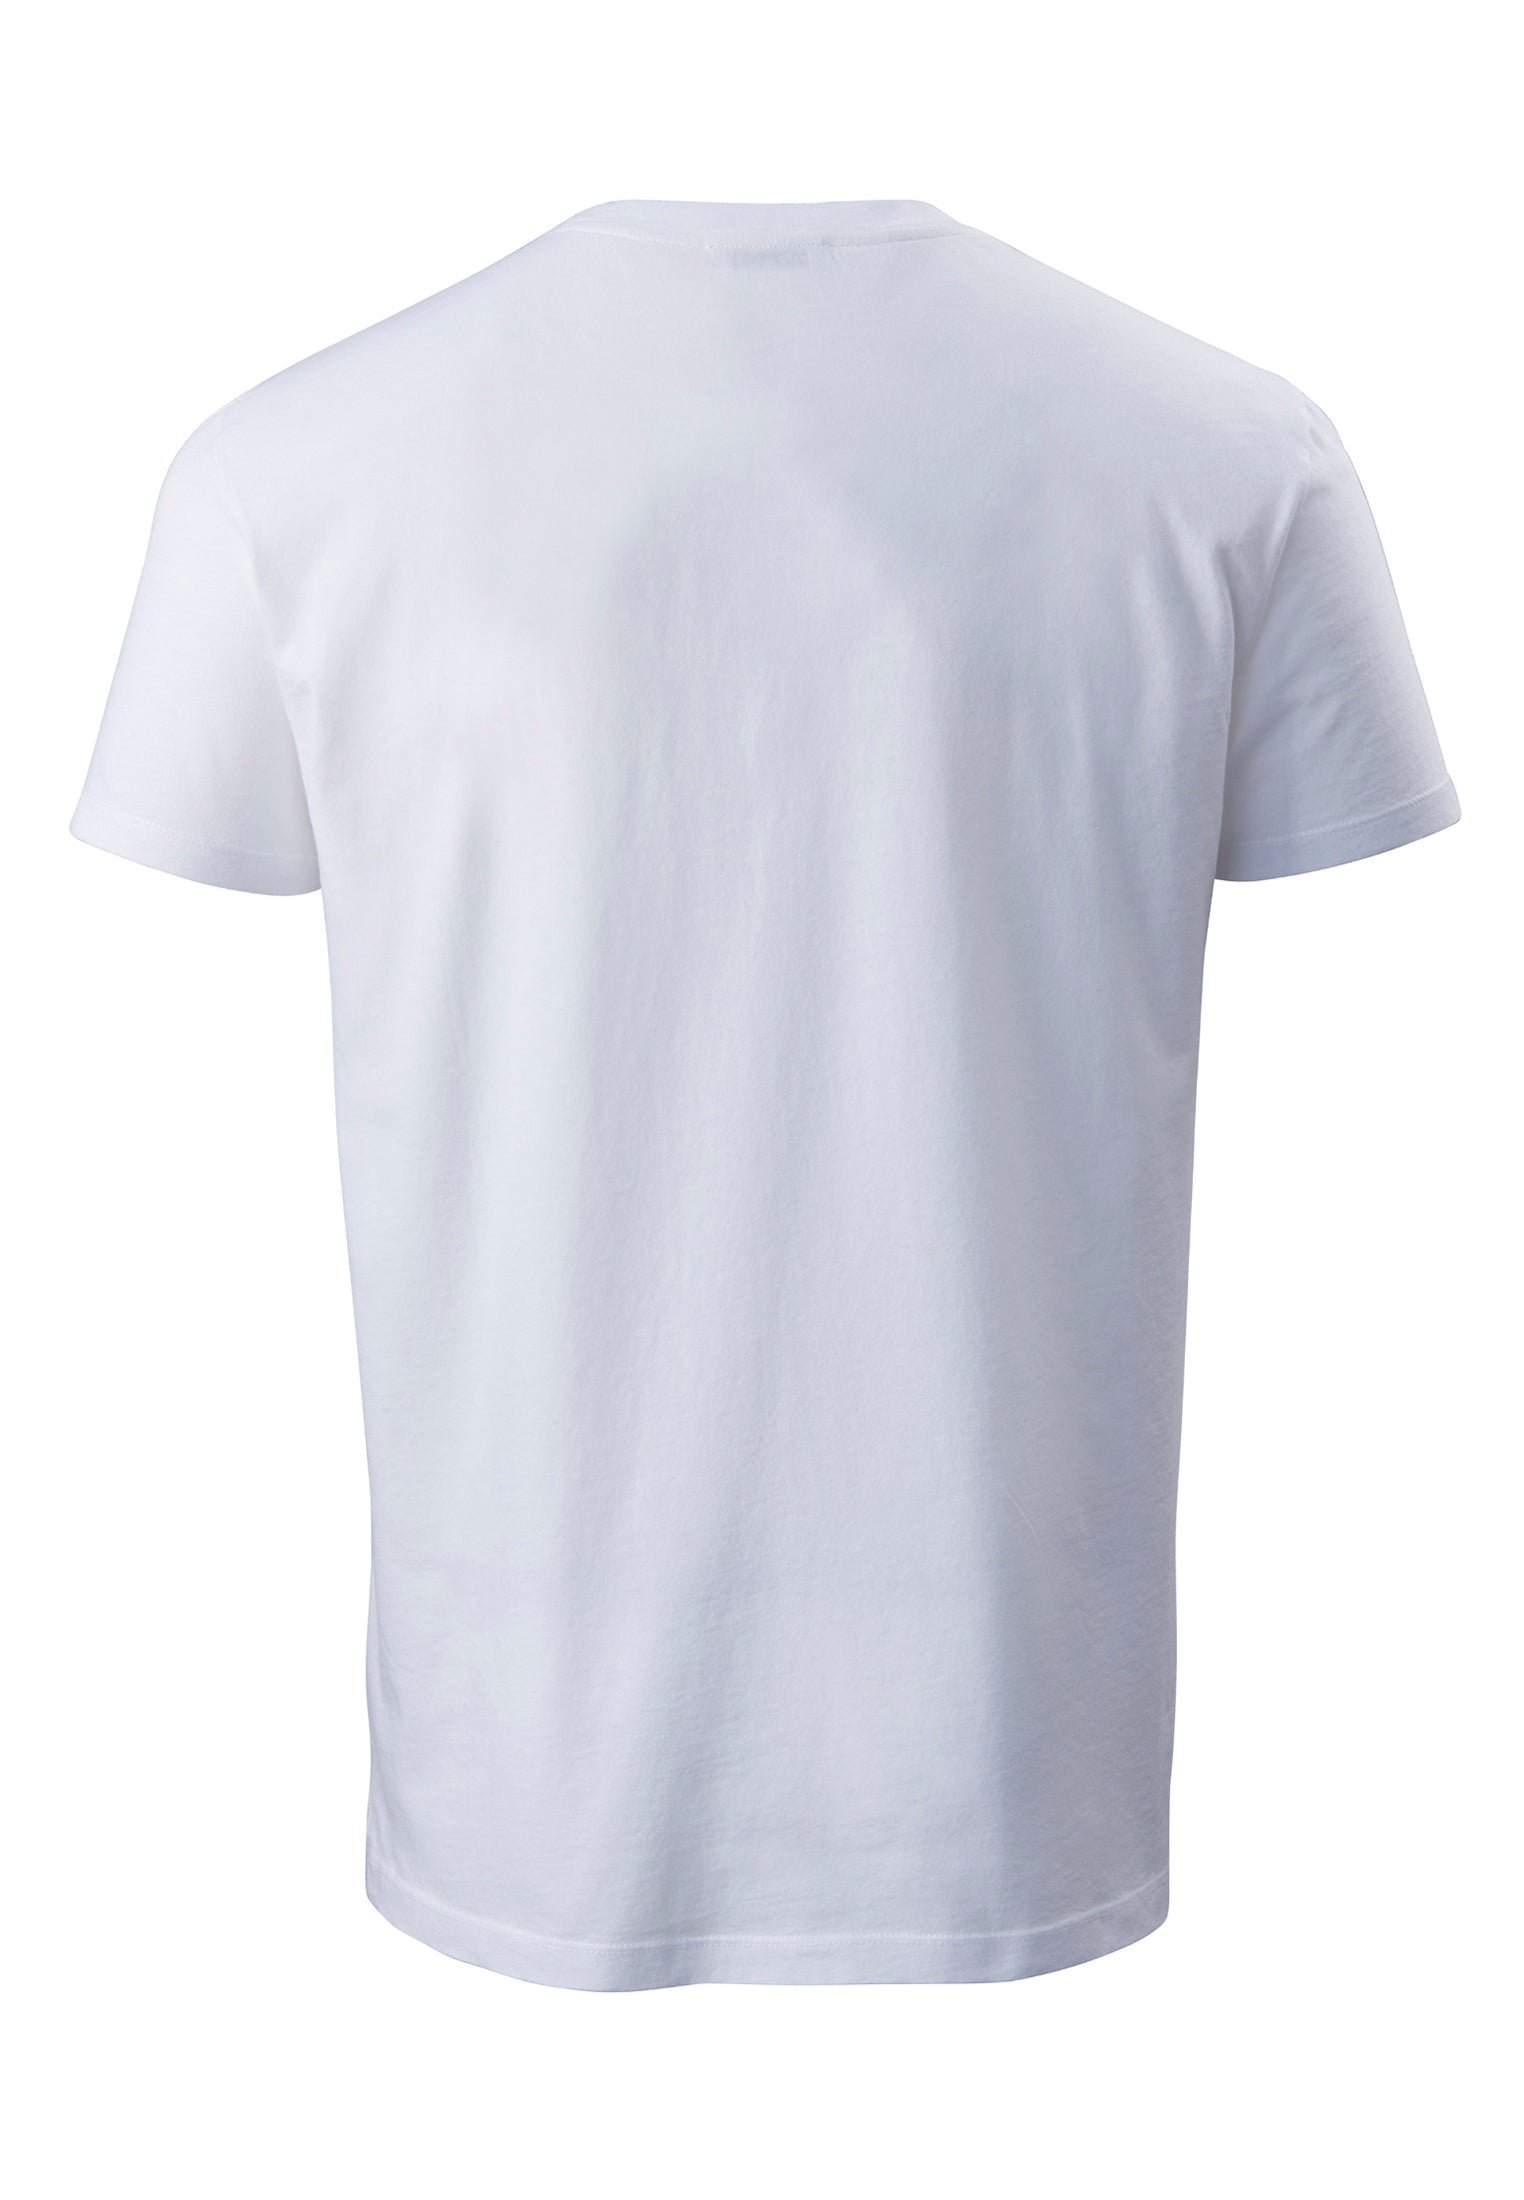 The Phyne Round Neck T-Shirt White